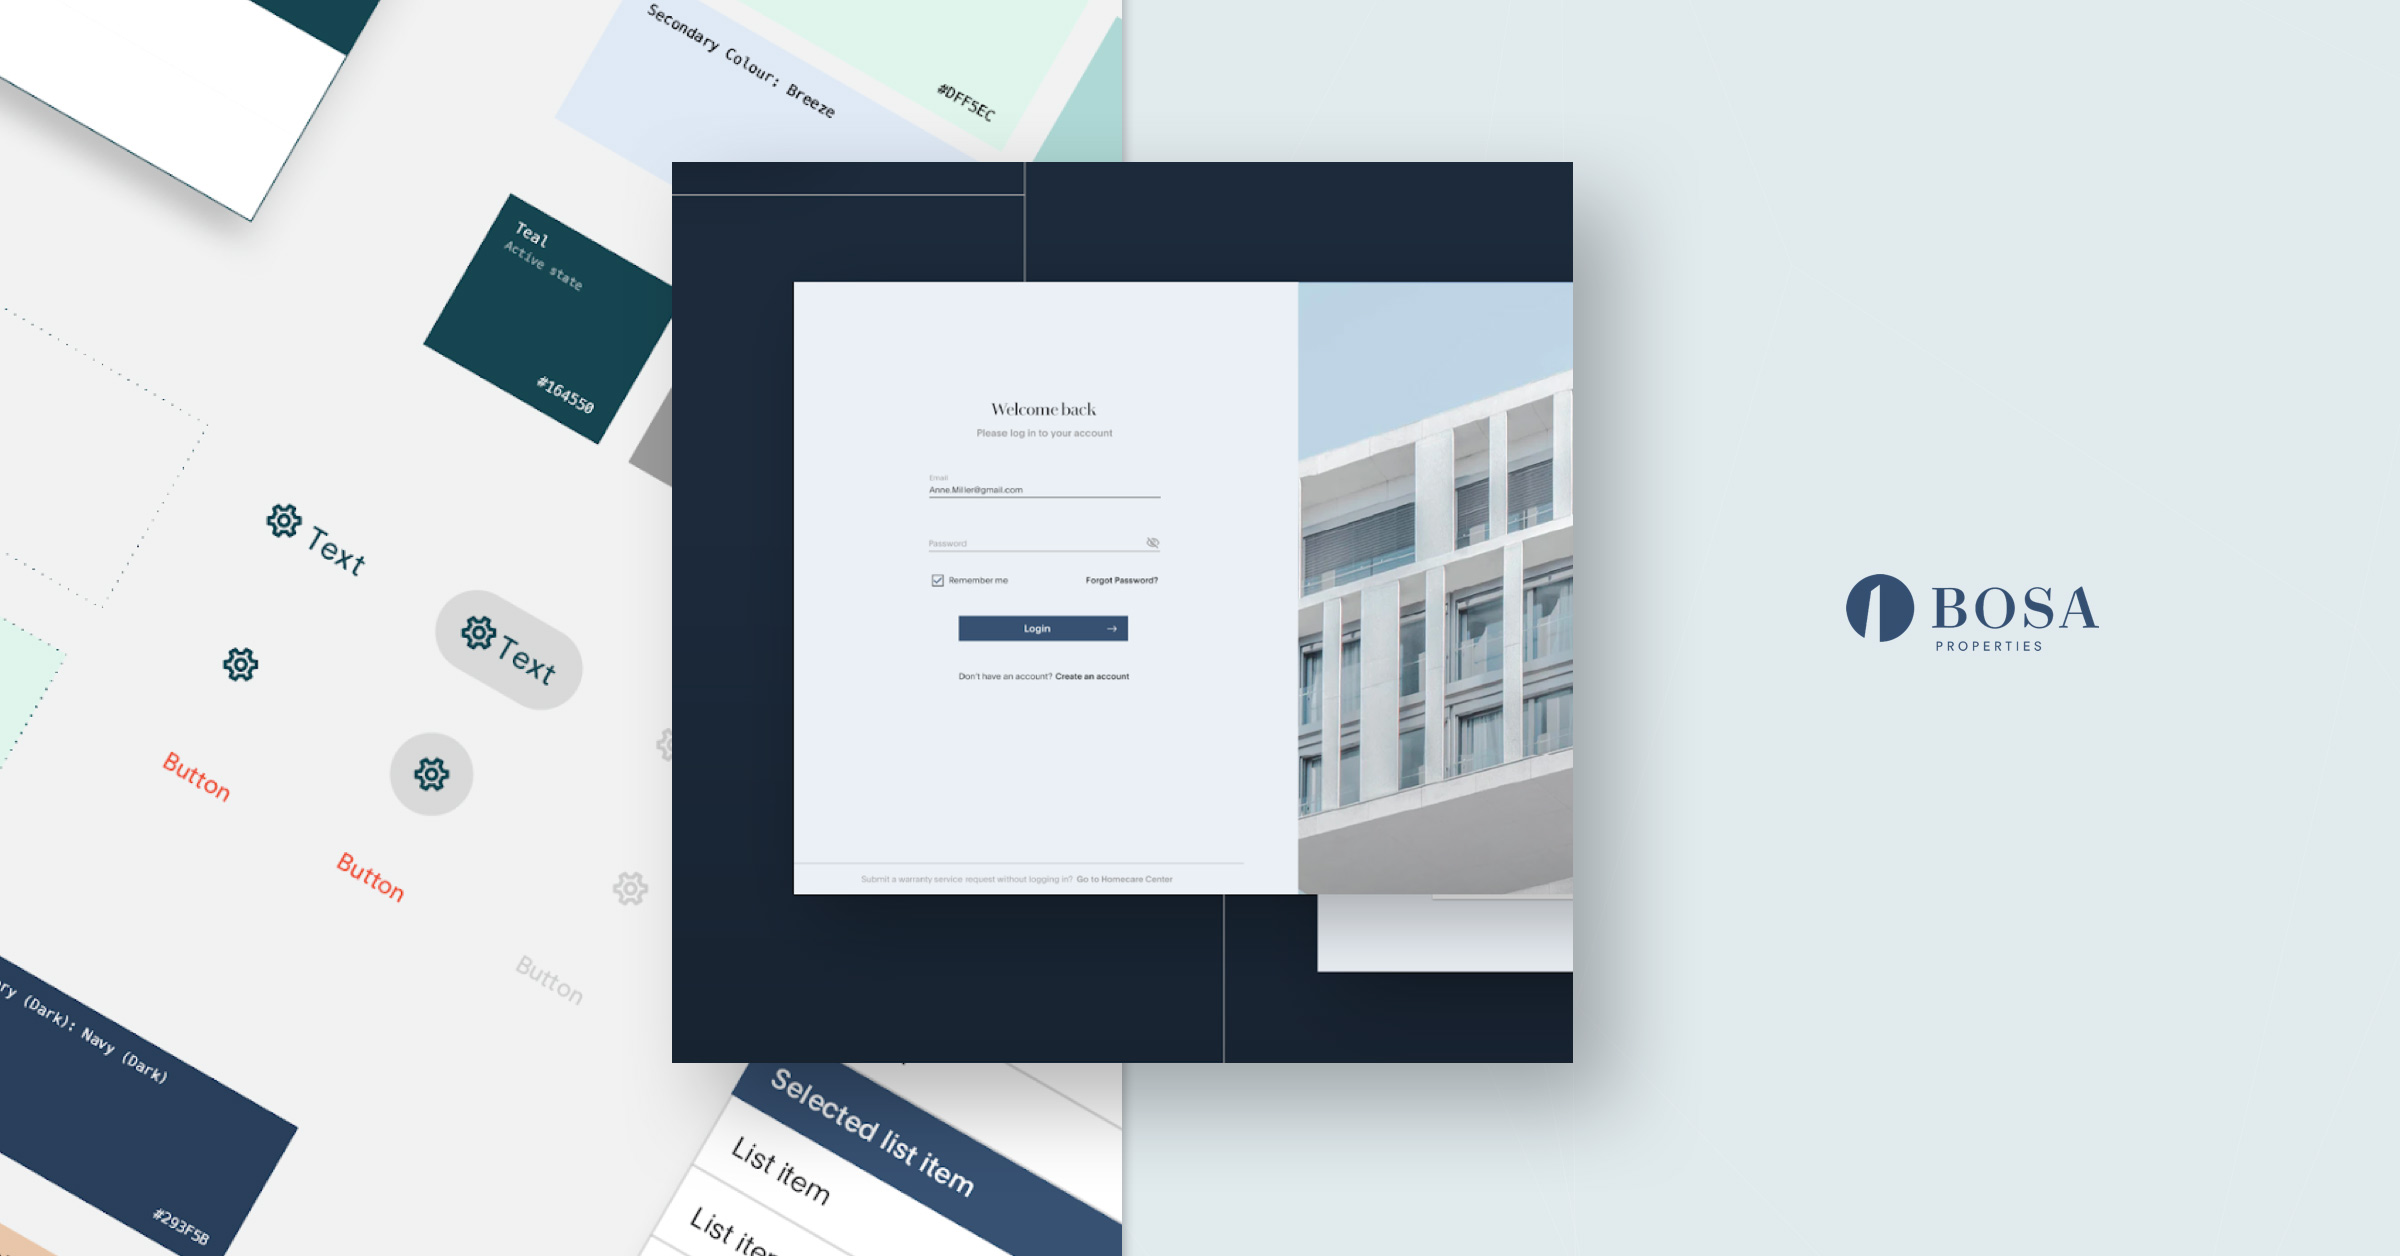 Creating a Customer Portal and Design System for Bosa Properties